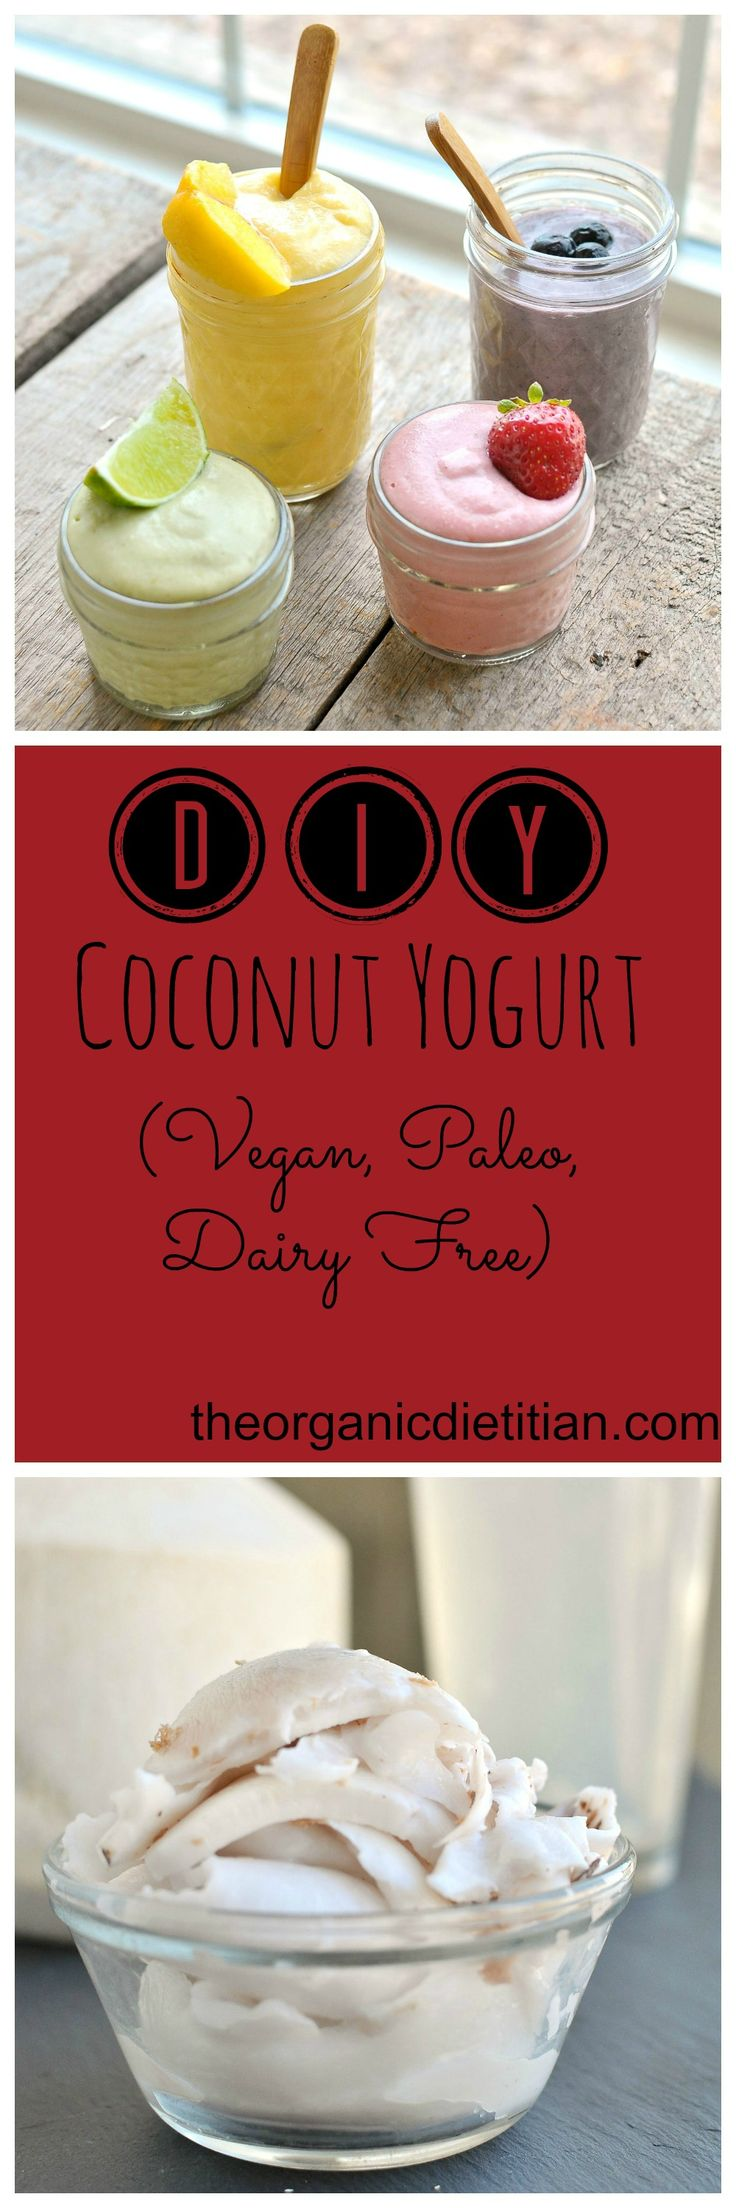 DIY Cococnut Yogurt from fresh young coconut meat.  Only 2 ingredients for the base. #vegan #paleo #dairyfree